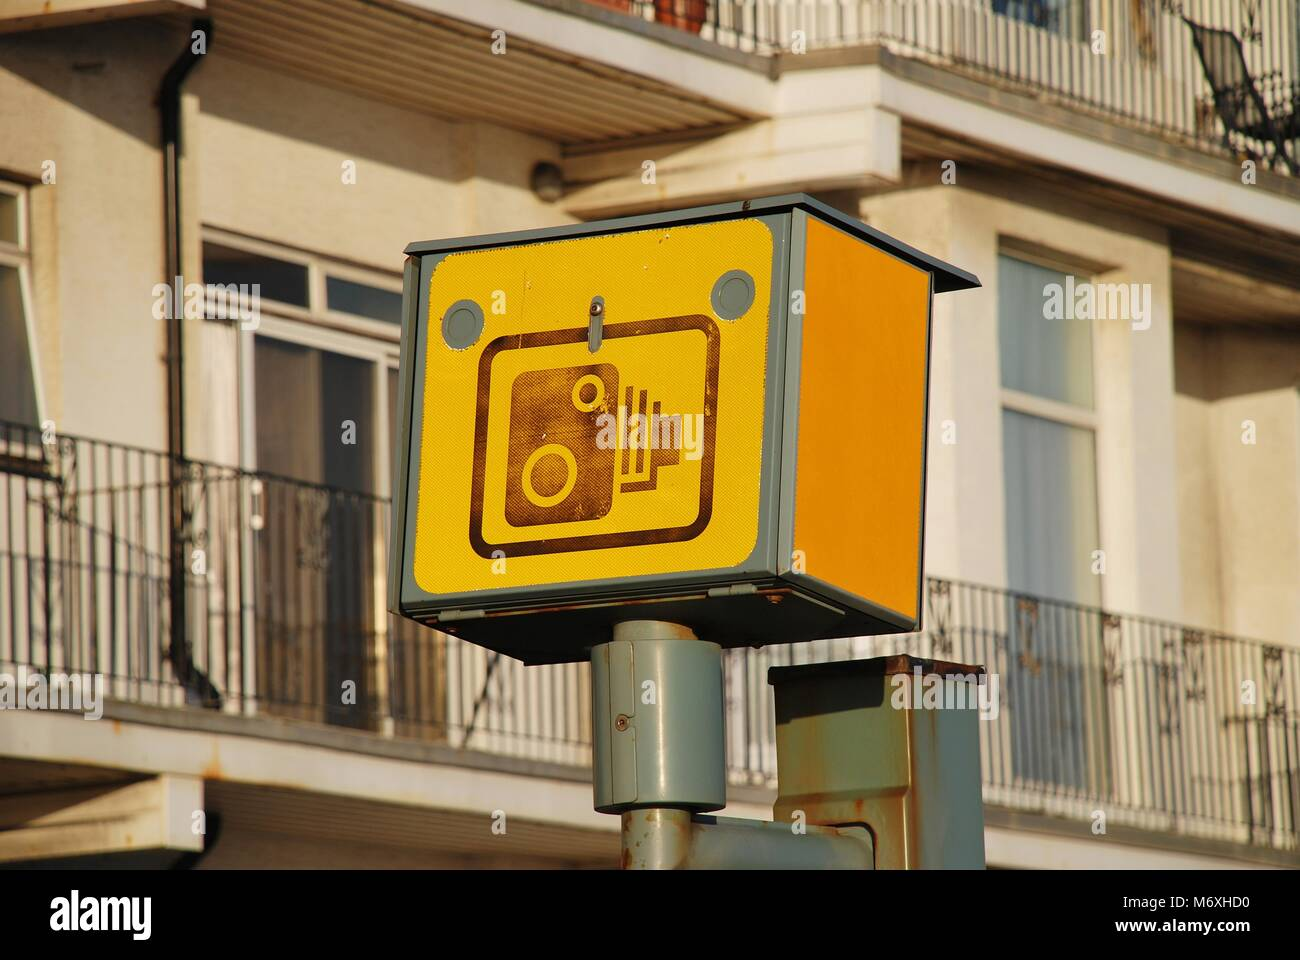 A road traffic speed camera on the seafront at Hastings in East Sussex, England on January 1, 2013. - Stock Image